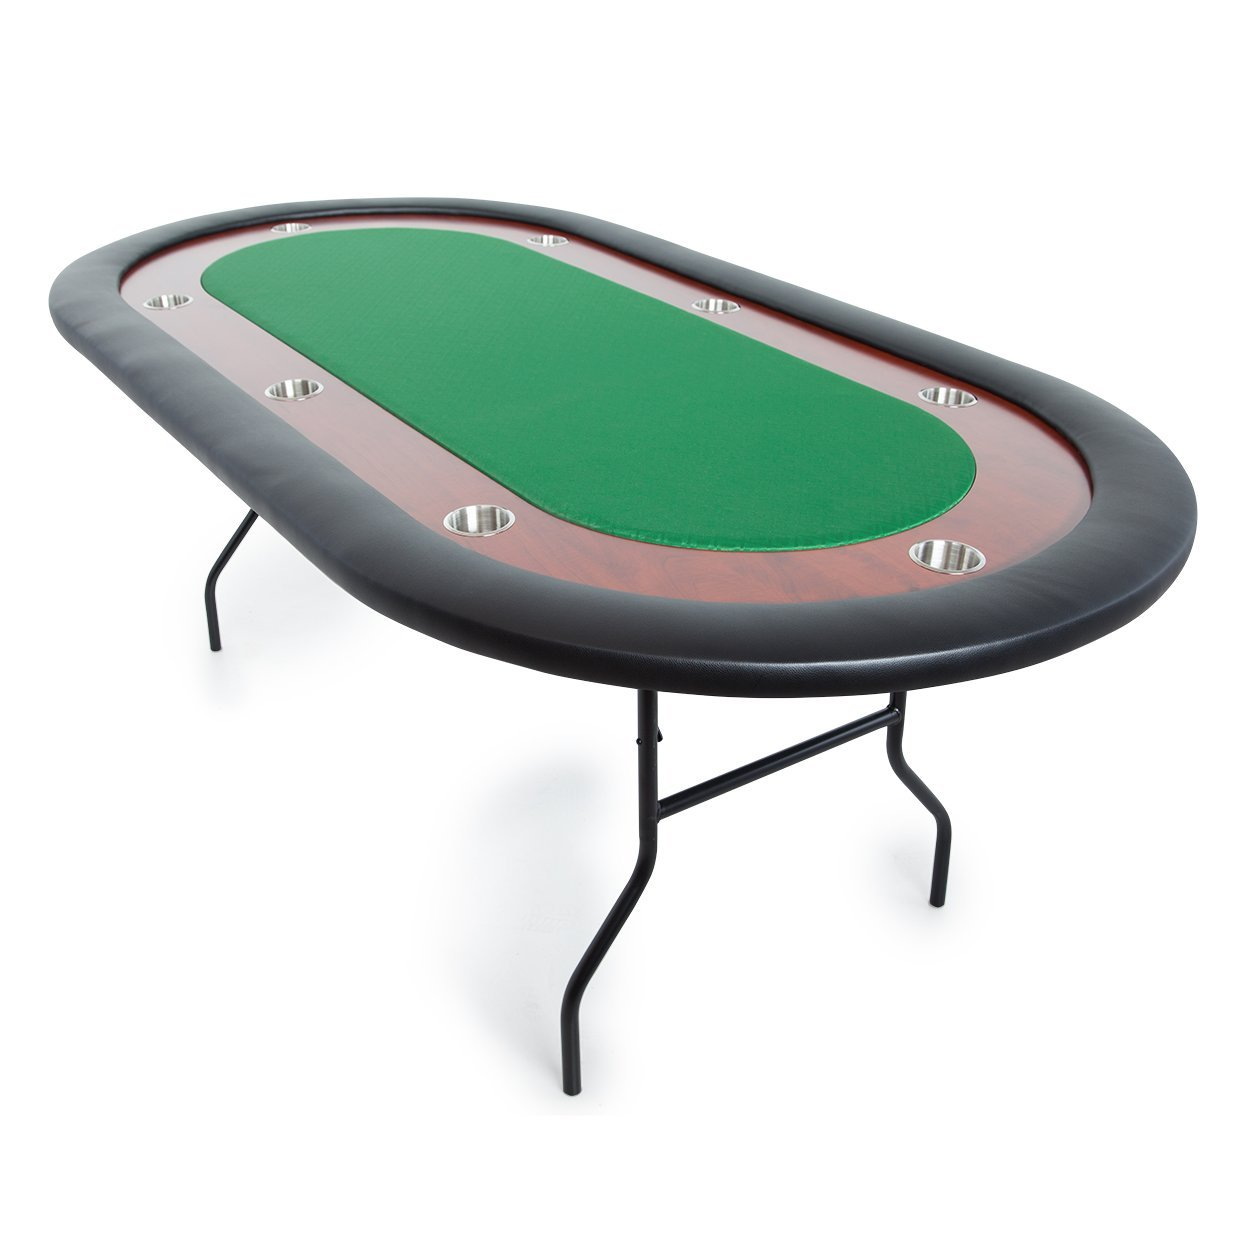 BBO Poker Ultimate Jr. Folding Poker Table for 8 Players with Green Speed Cloth Playing Surface, 82 x 44-Inch Oval